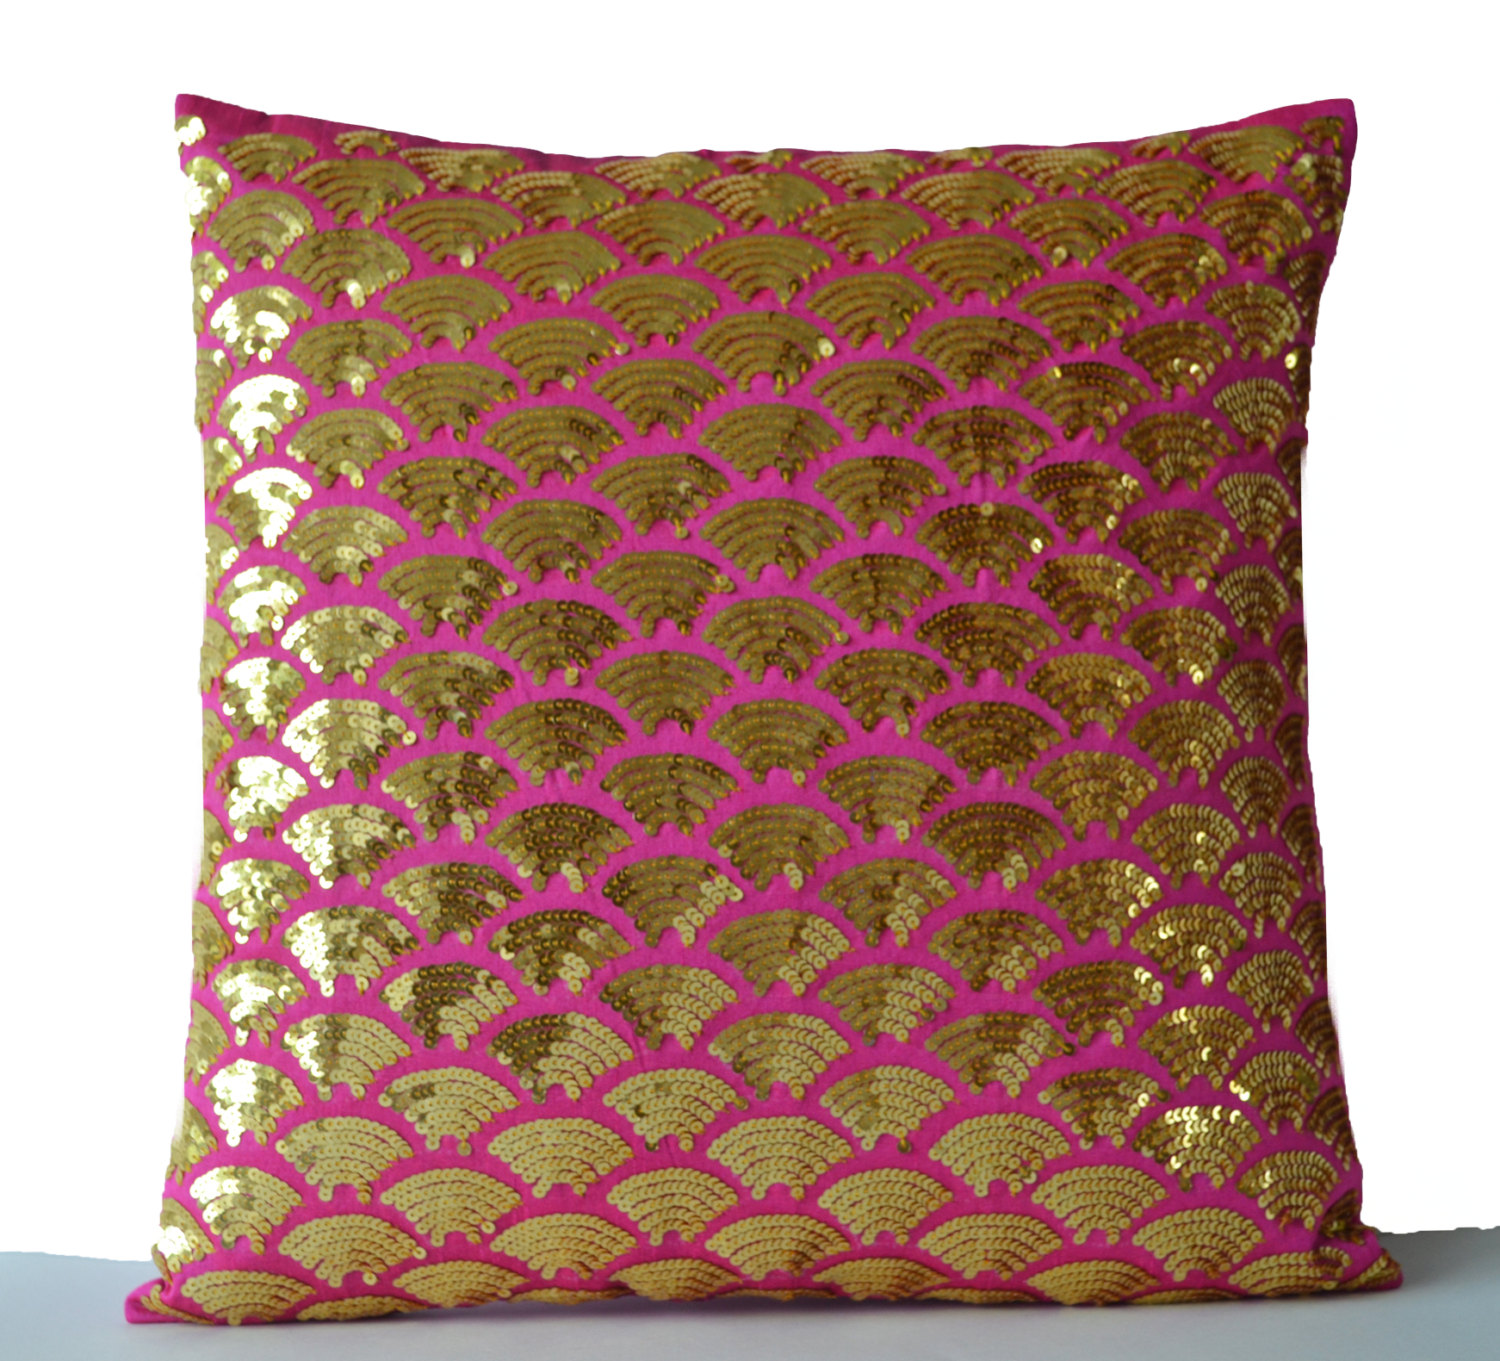 Leaf Throw Pillows | Gold Throw Pillows | Grey Throw Pillows